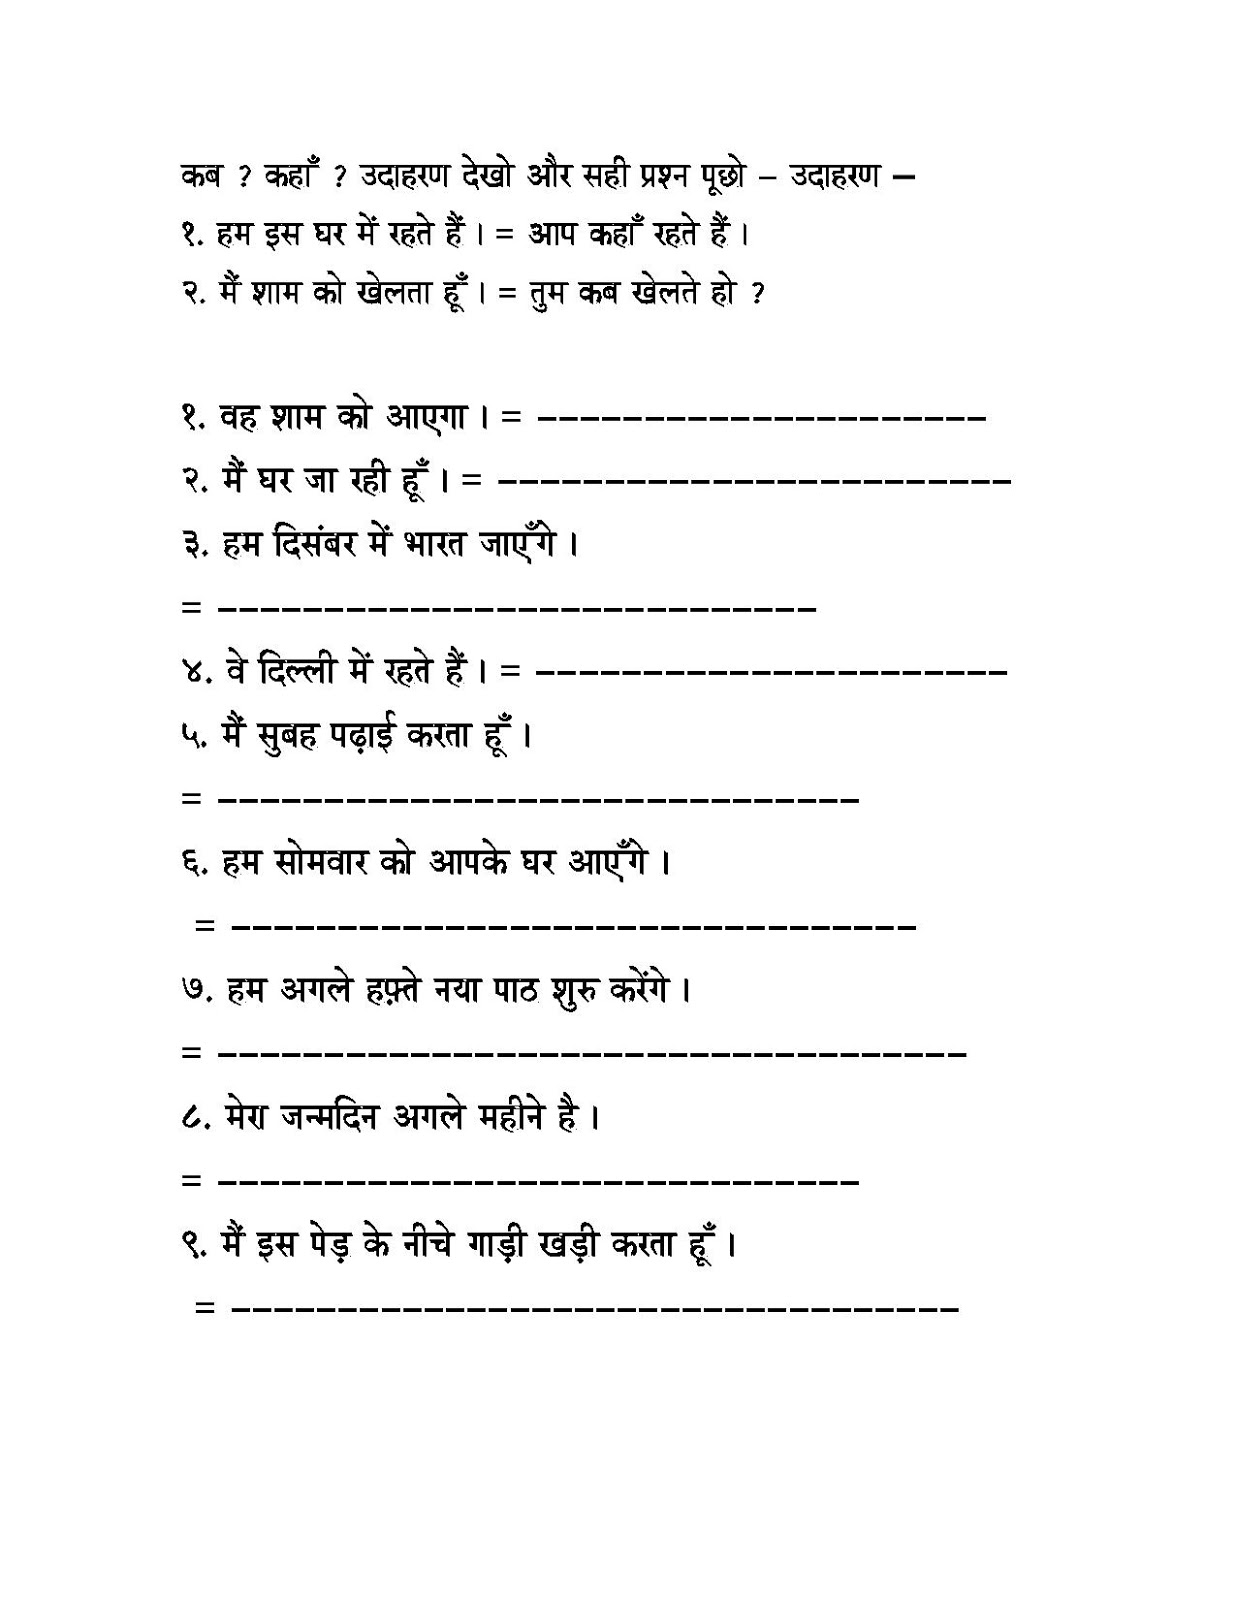 hindi grammar work sheet collection for classes 5 6 7 8 types of sentences work sheets for. Black Bedroom Furniture Sets. Home Design Ideas